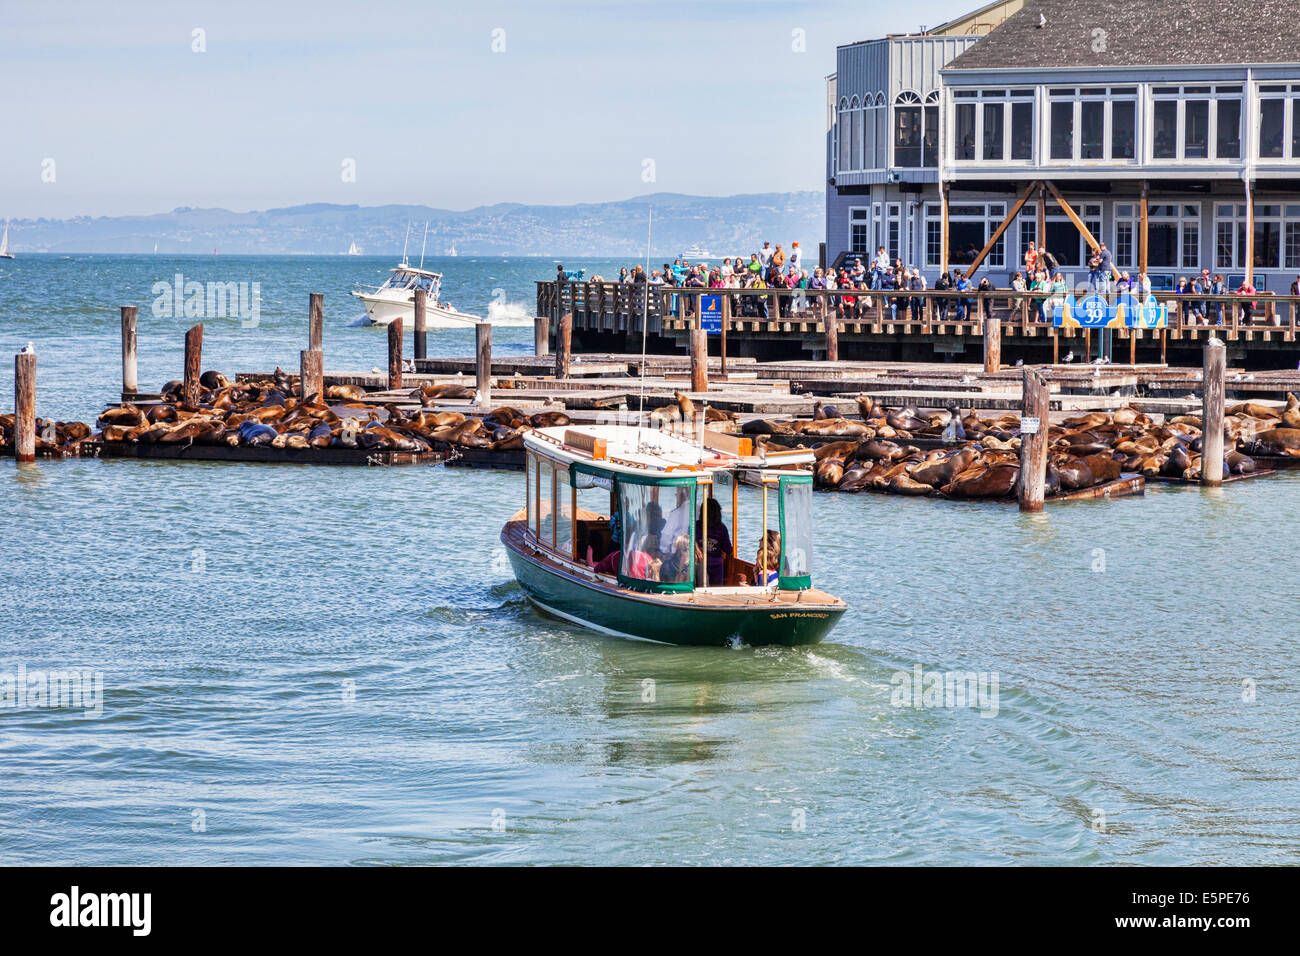 Crowds of tourists gather to view the famous sea lions at Pier 39, San Francisco. - Stock Image